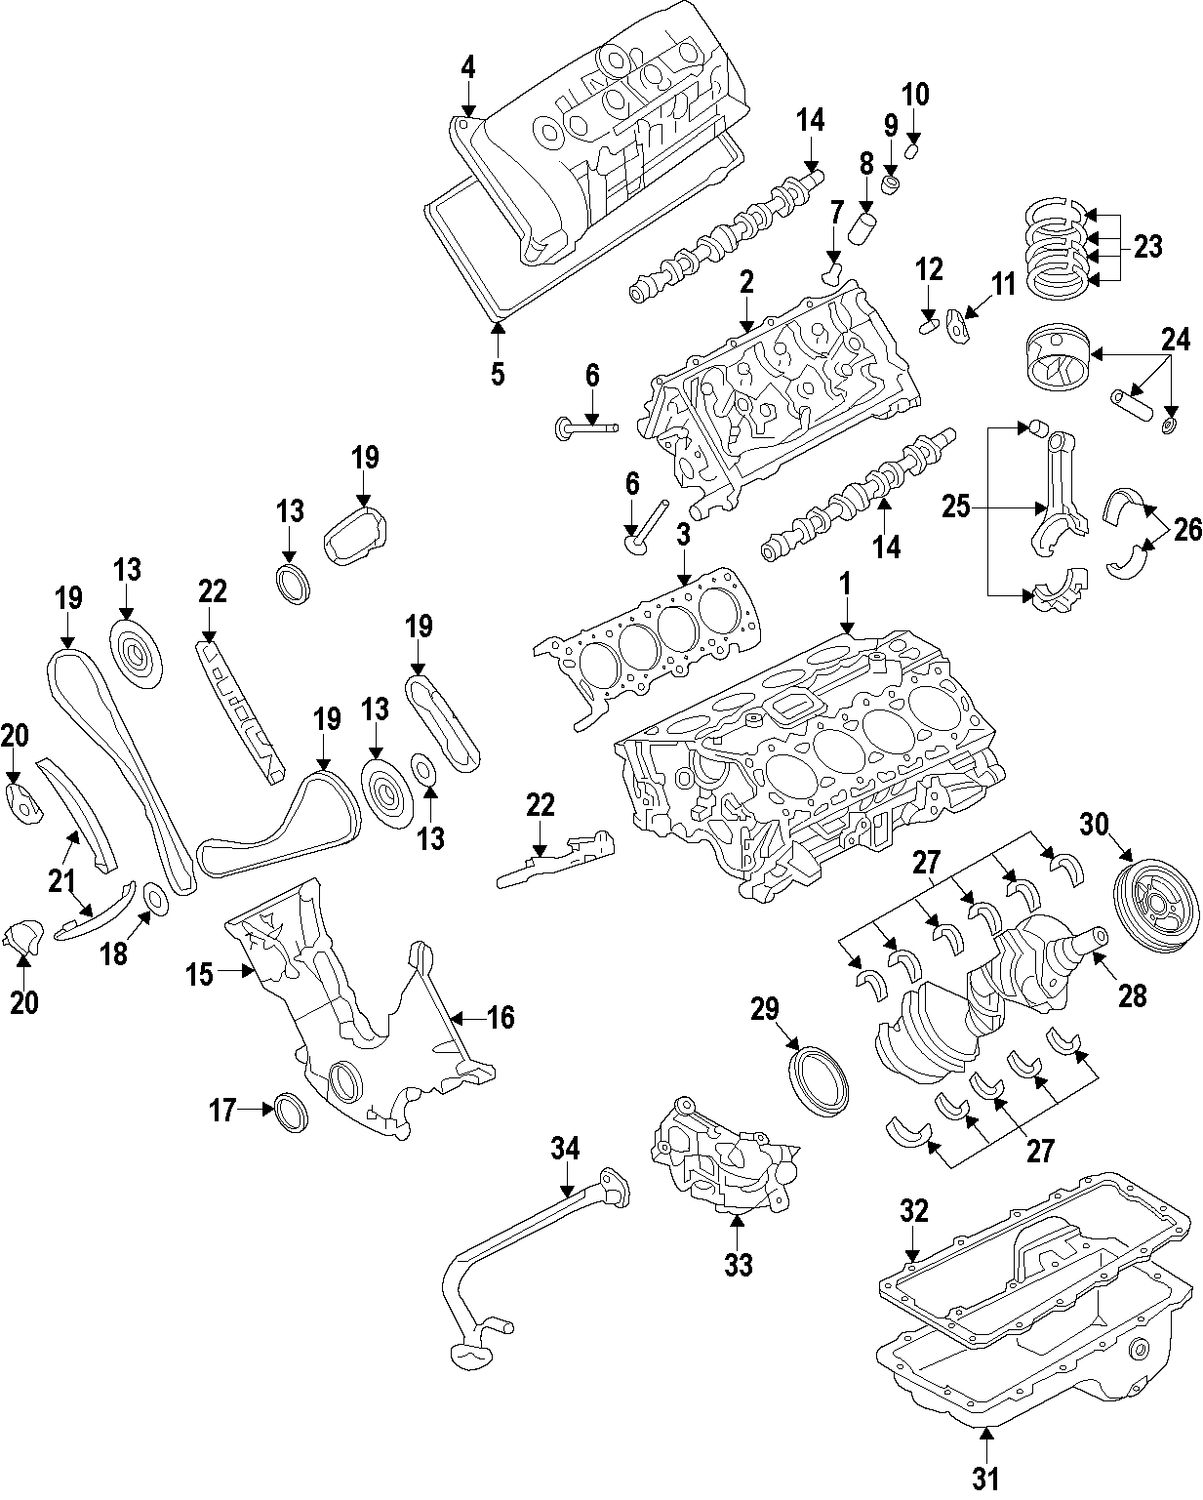 2014 Ford Mustang Parts Diagram • Wiring Diagram For Free